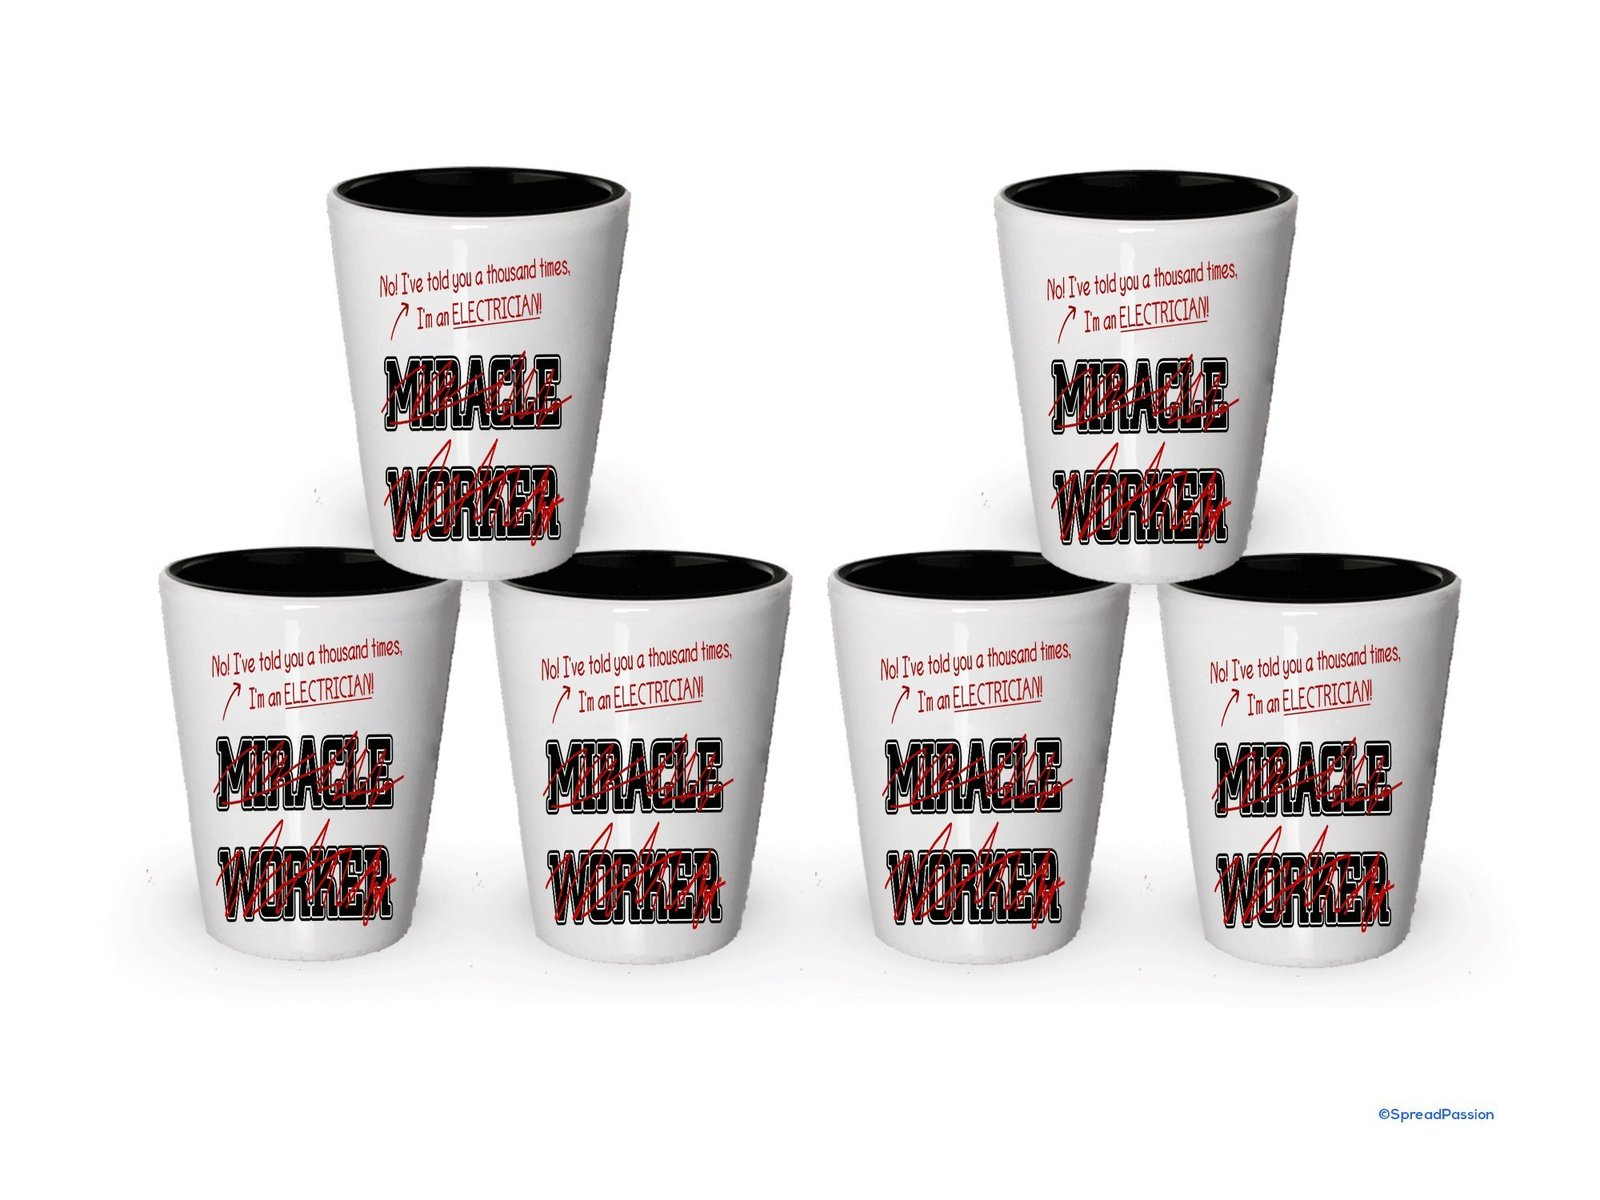 I'm Electrician shot glass- Not a Miracle Worker -Electrician Gifts (6) - $29.35